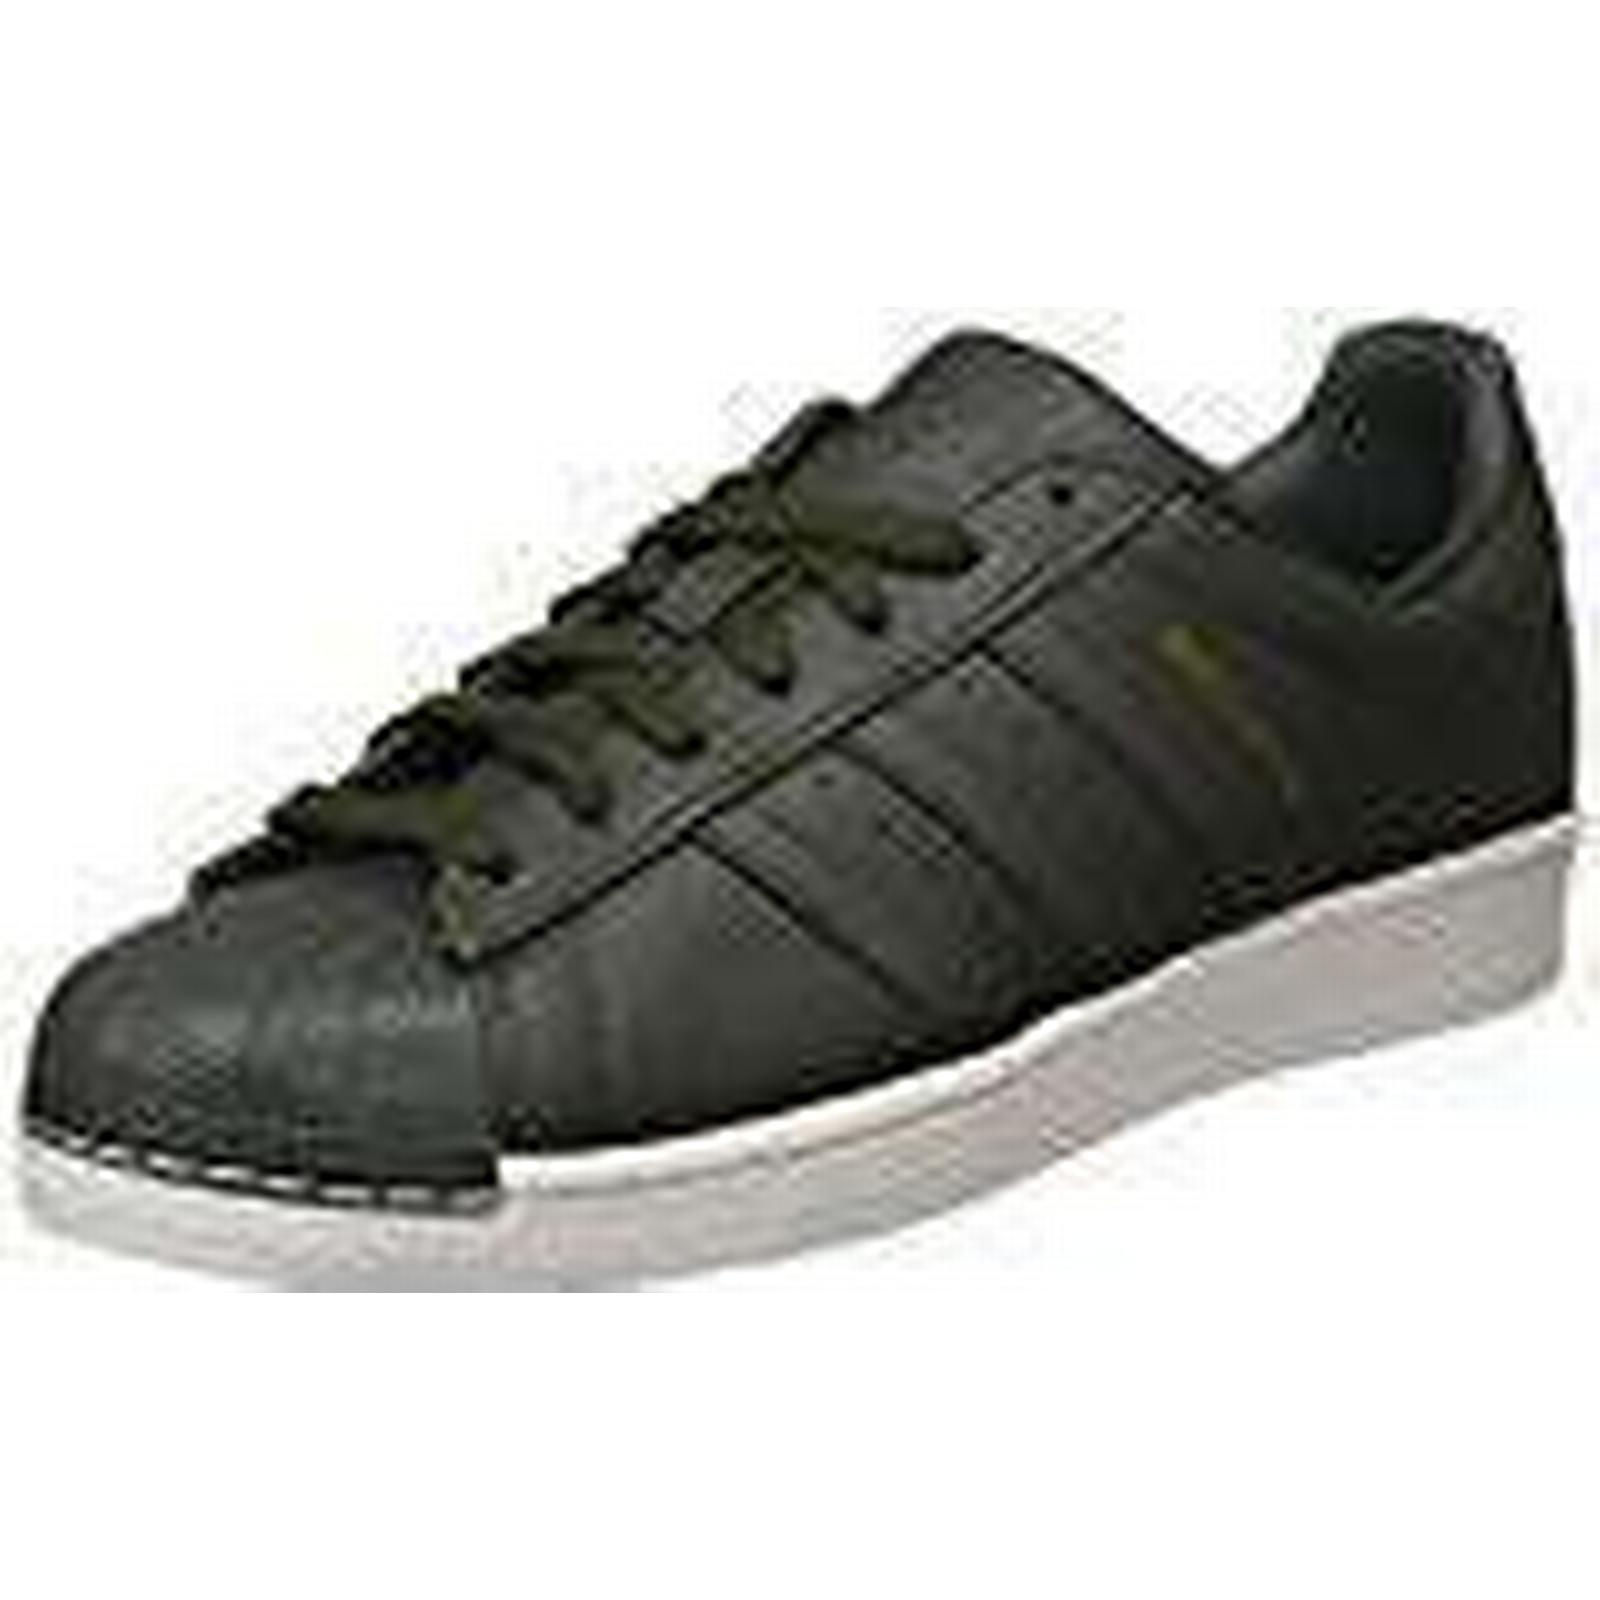 Adidas Men's Superstar Trainers, 9.5 Blue (Night Cargo/Red-Solid/Core Black), 9.5 Trainers, UK 44 EU 71f389